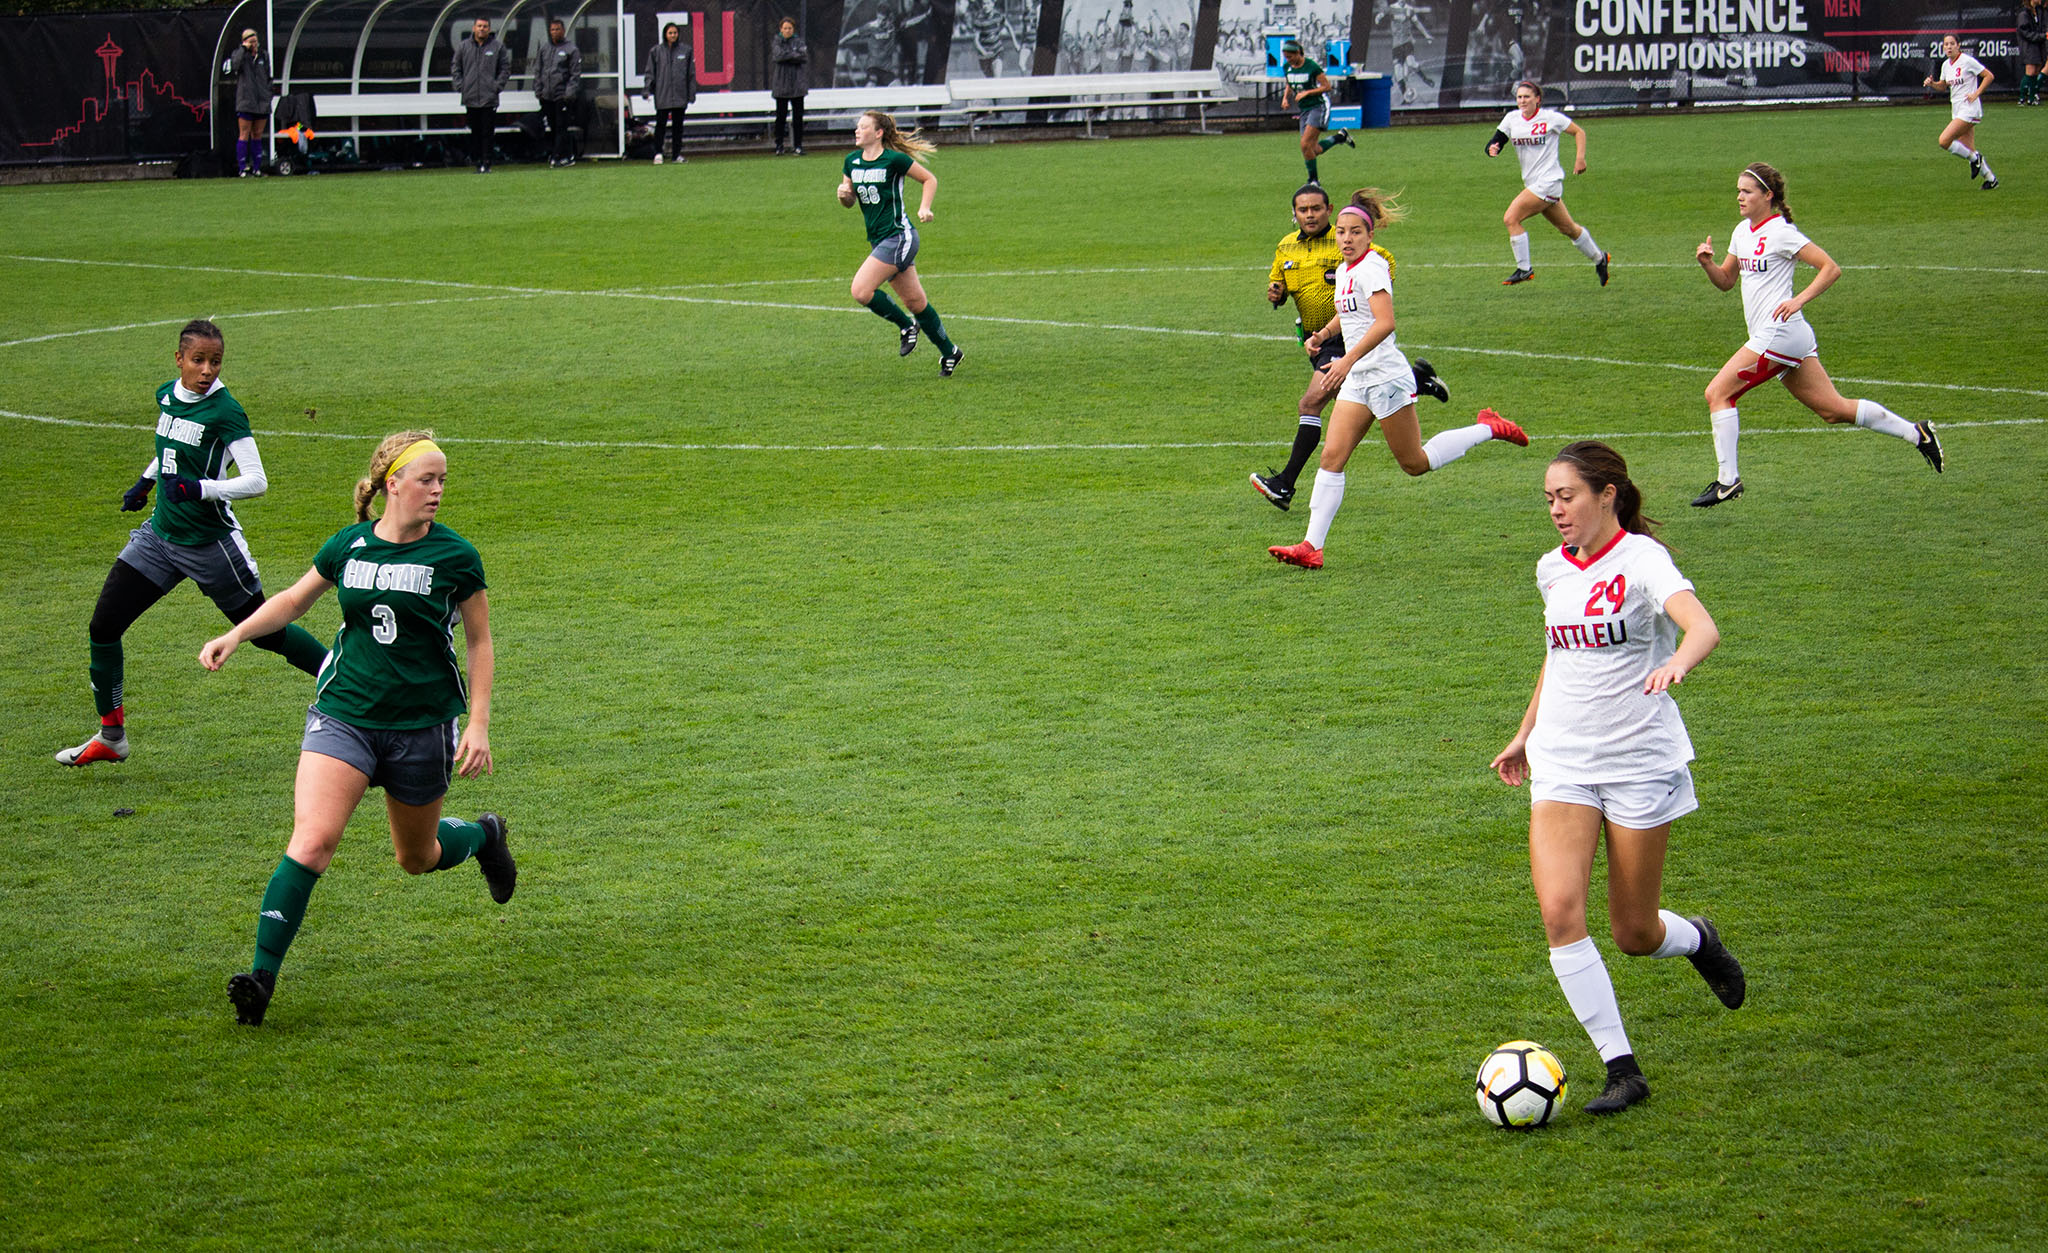 Julia Humphreys (29) dribbles the ball down the flank of the field.